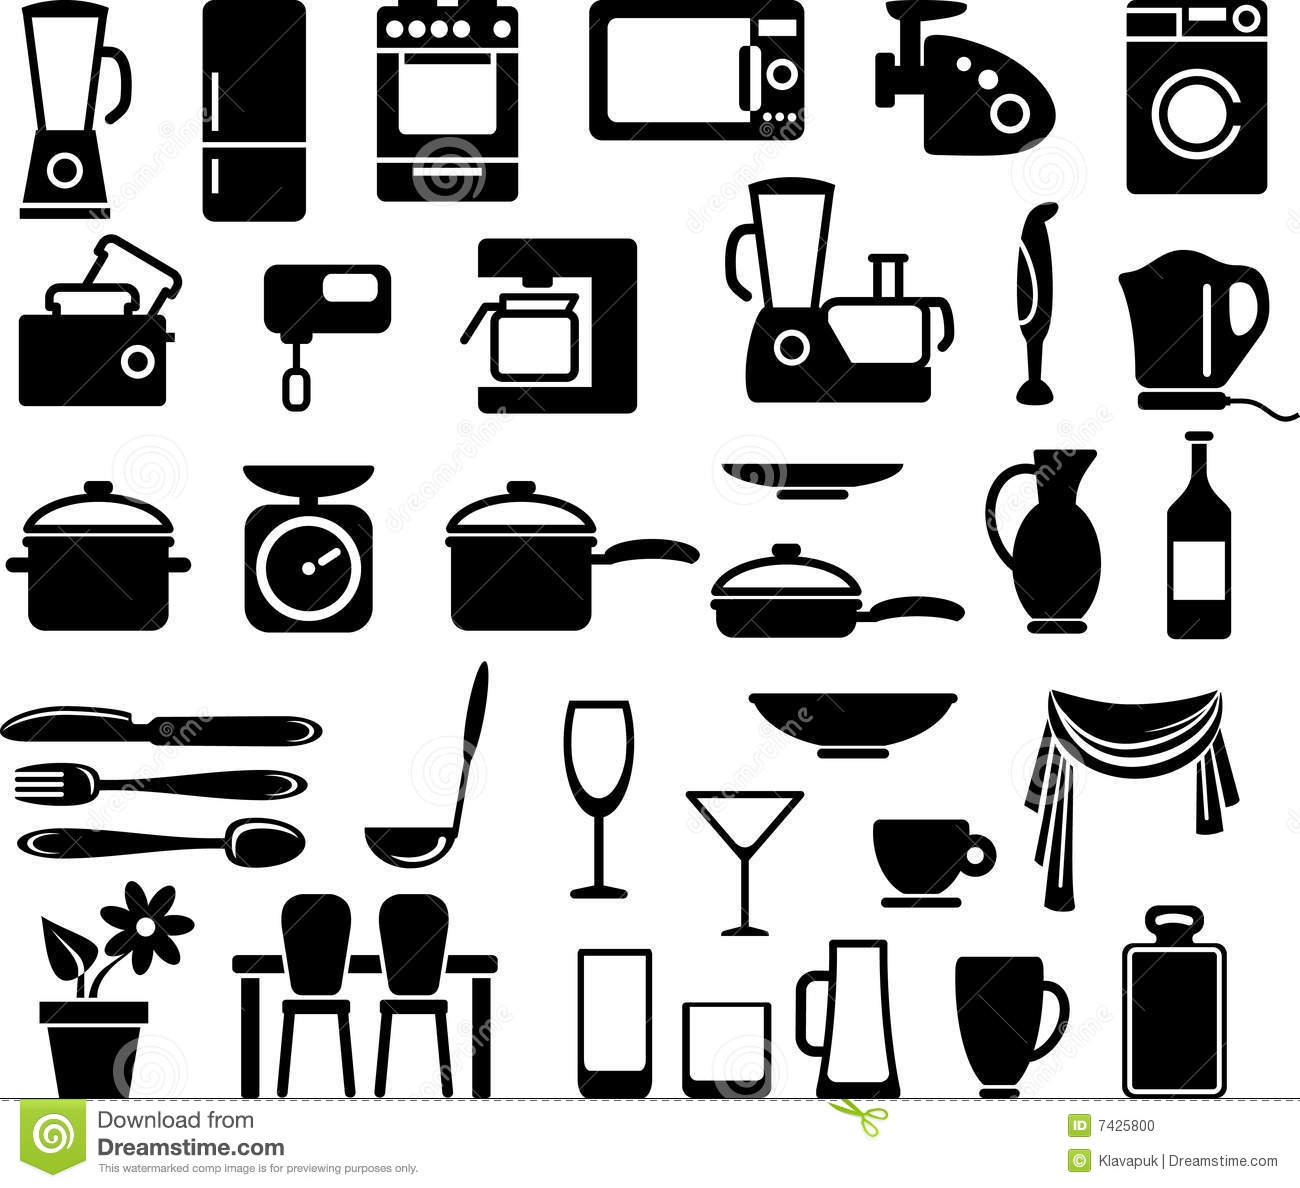 Kitchen Appliances Clip Art ~ Applicance clipart clipground